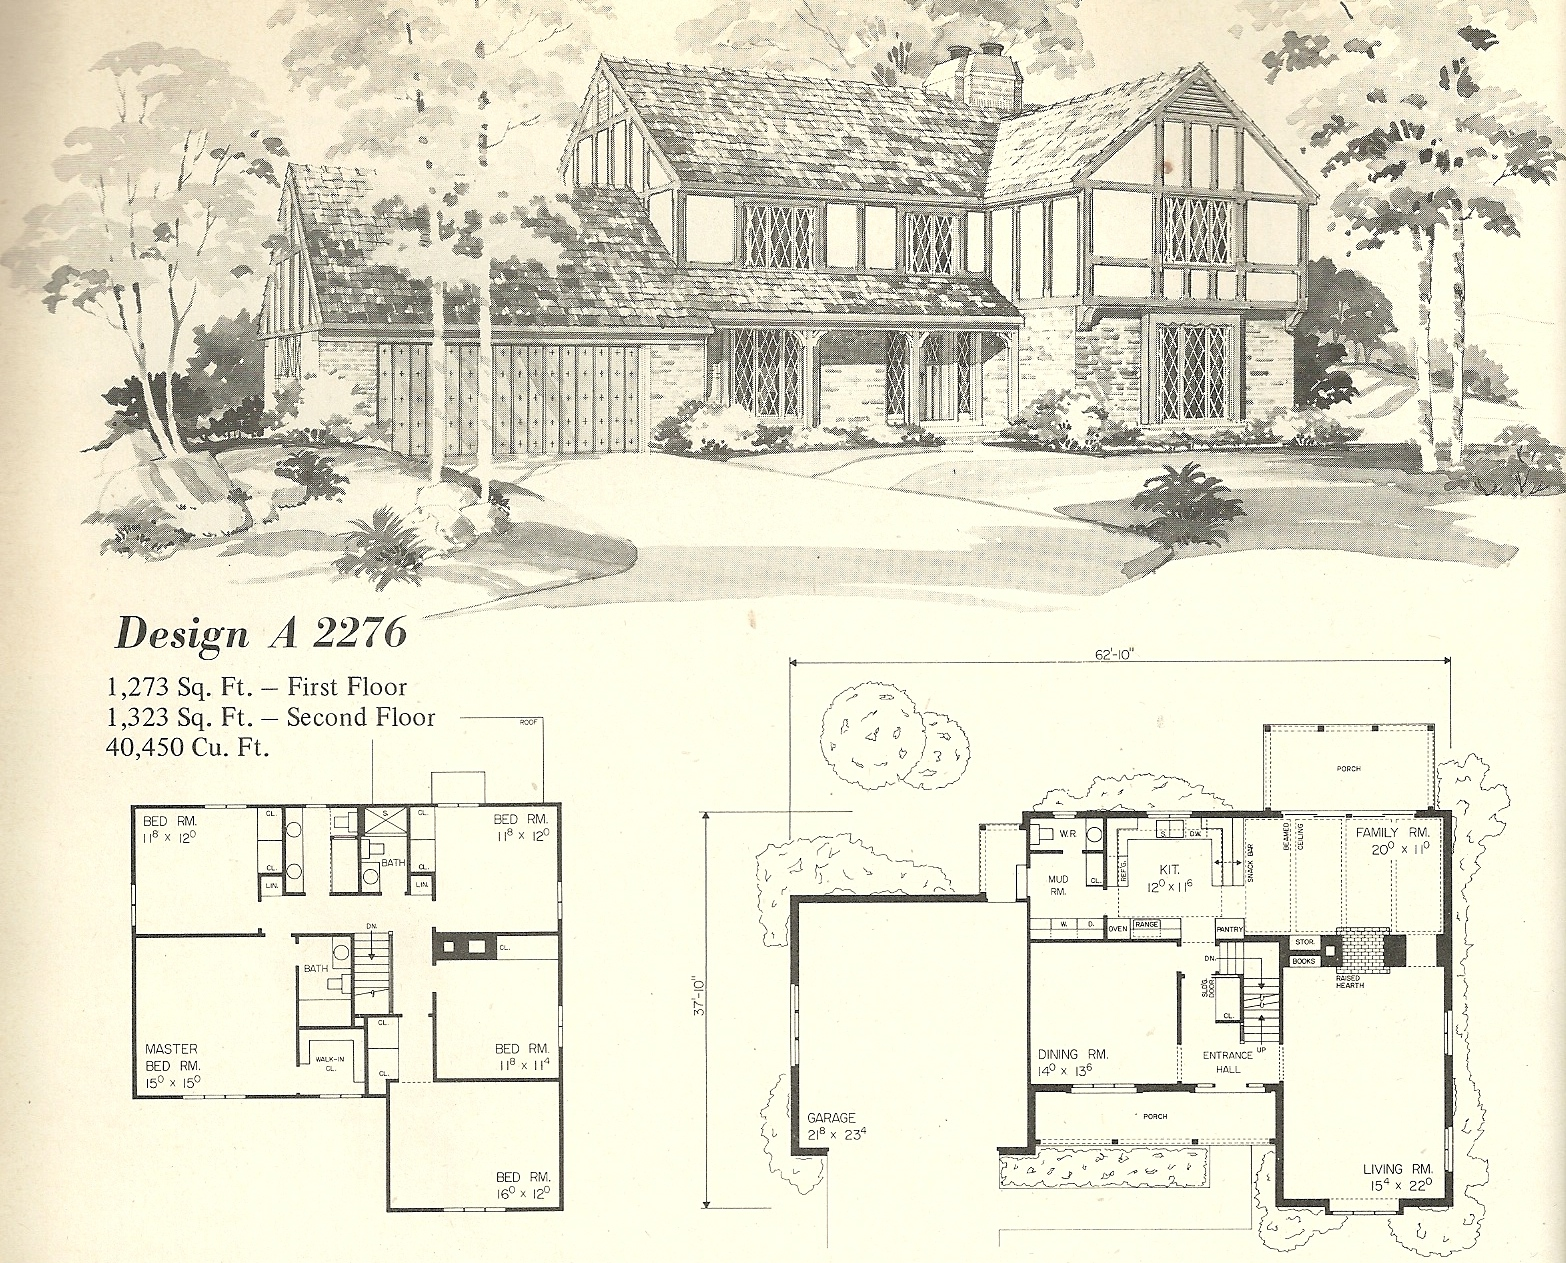 Vintage house plans 2276 antique alter ego for Classic tudor house plans